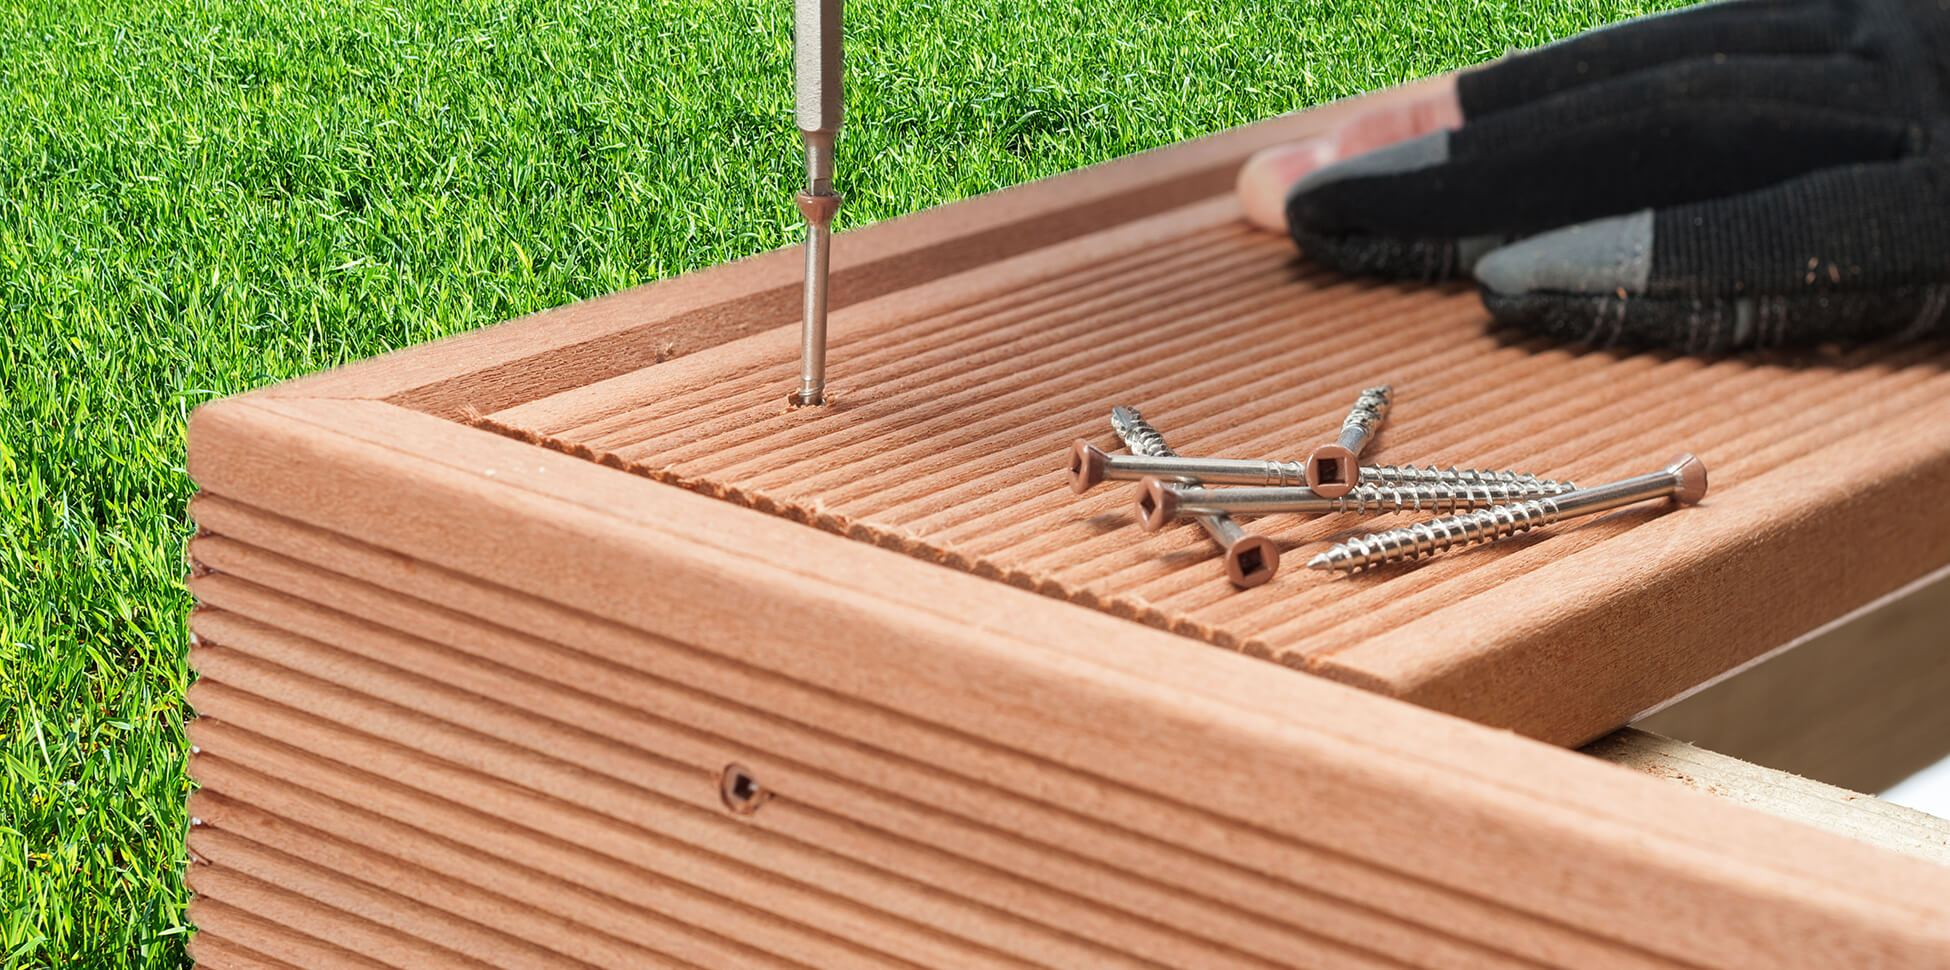 What Screws To Use For Decking Find Out The Best Hidden